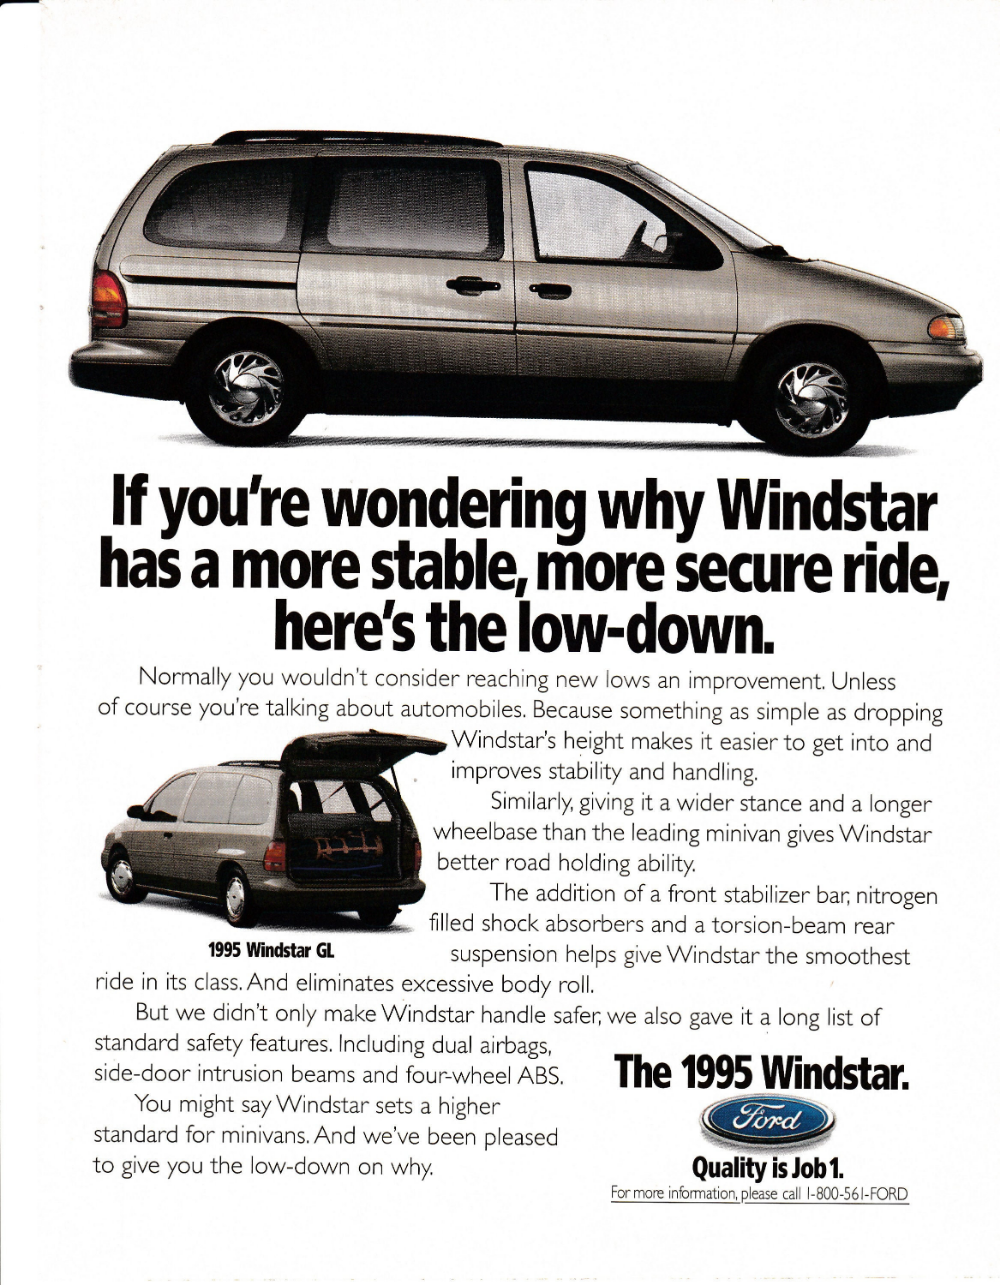 1995 Ford Windstar Minivan Quality Is Job 1 Automobile Original Magazine Ad Ford Windstar Mini Van Ford